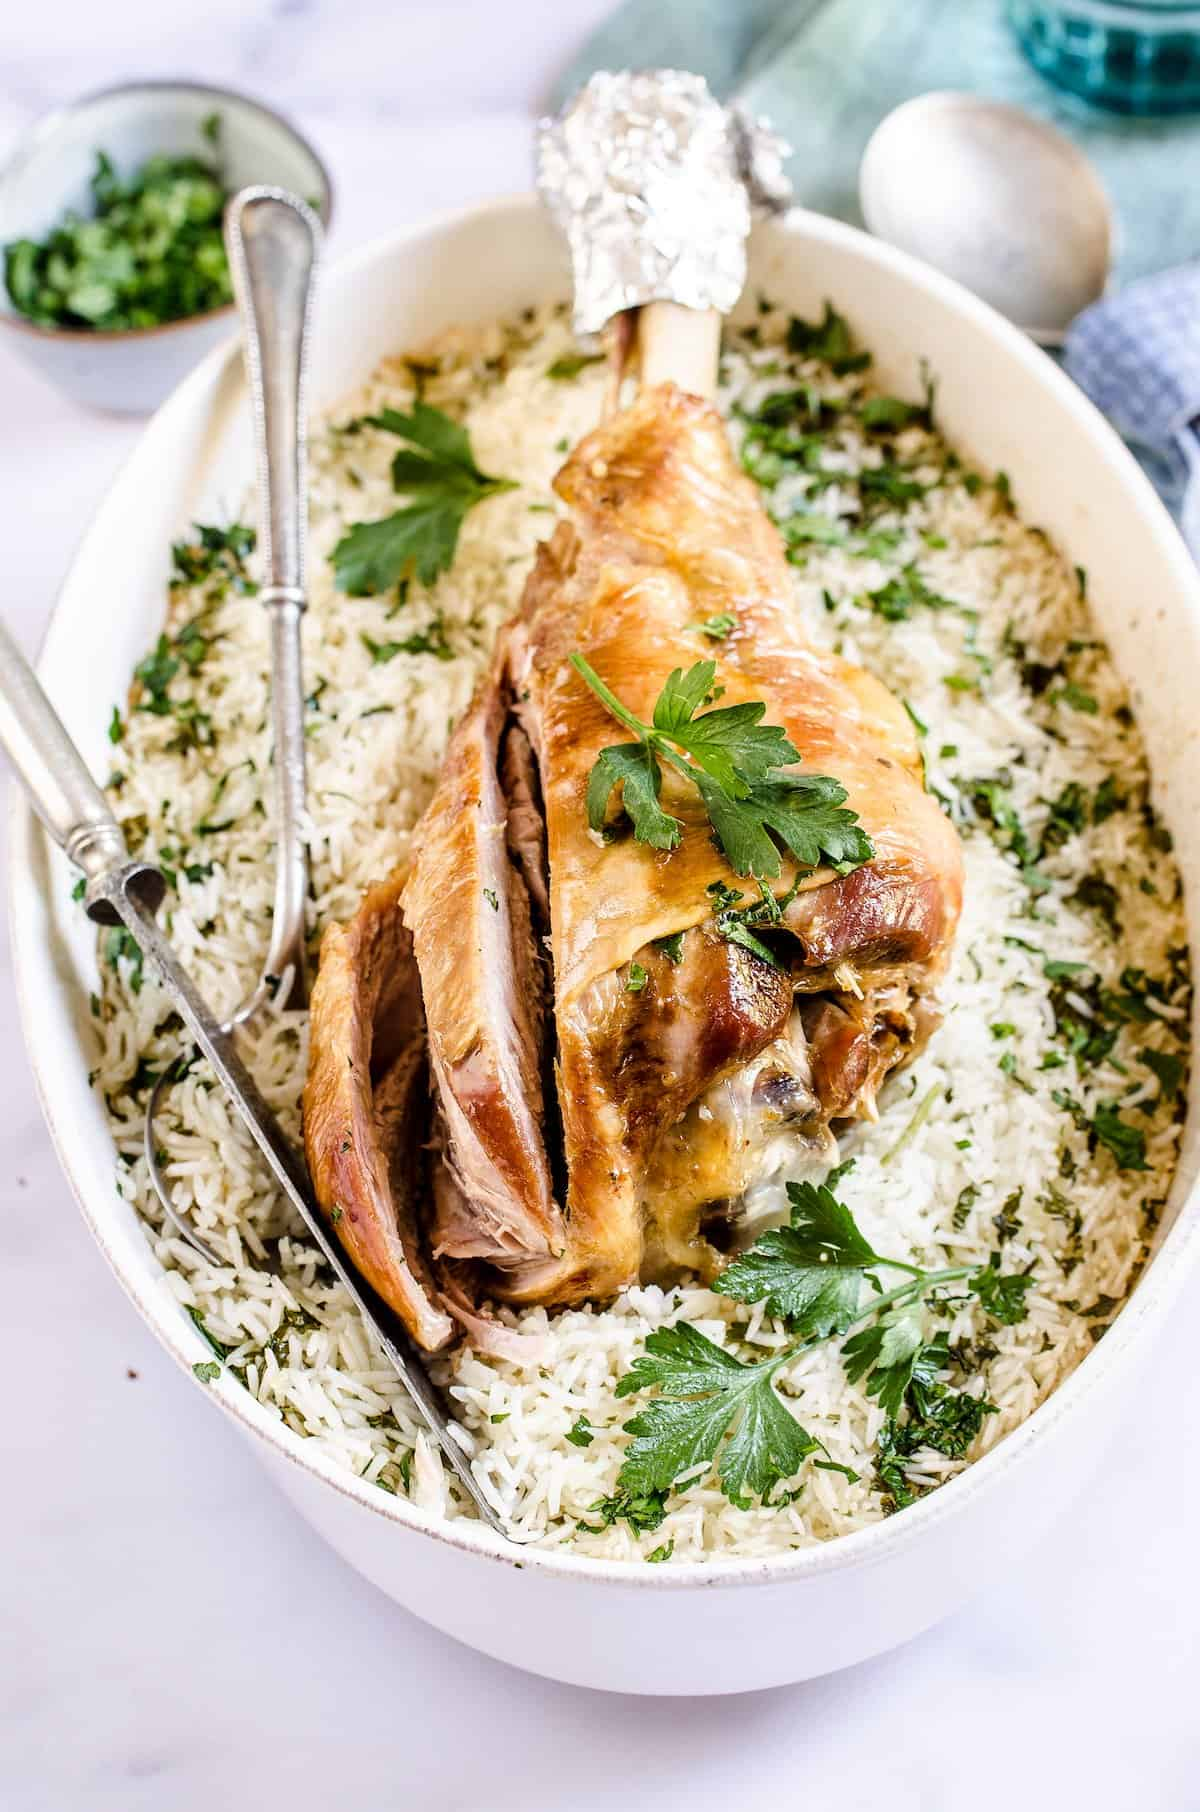 Sliced turkey over baked rice and herbs.